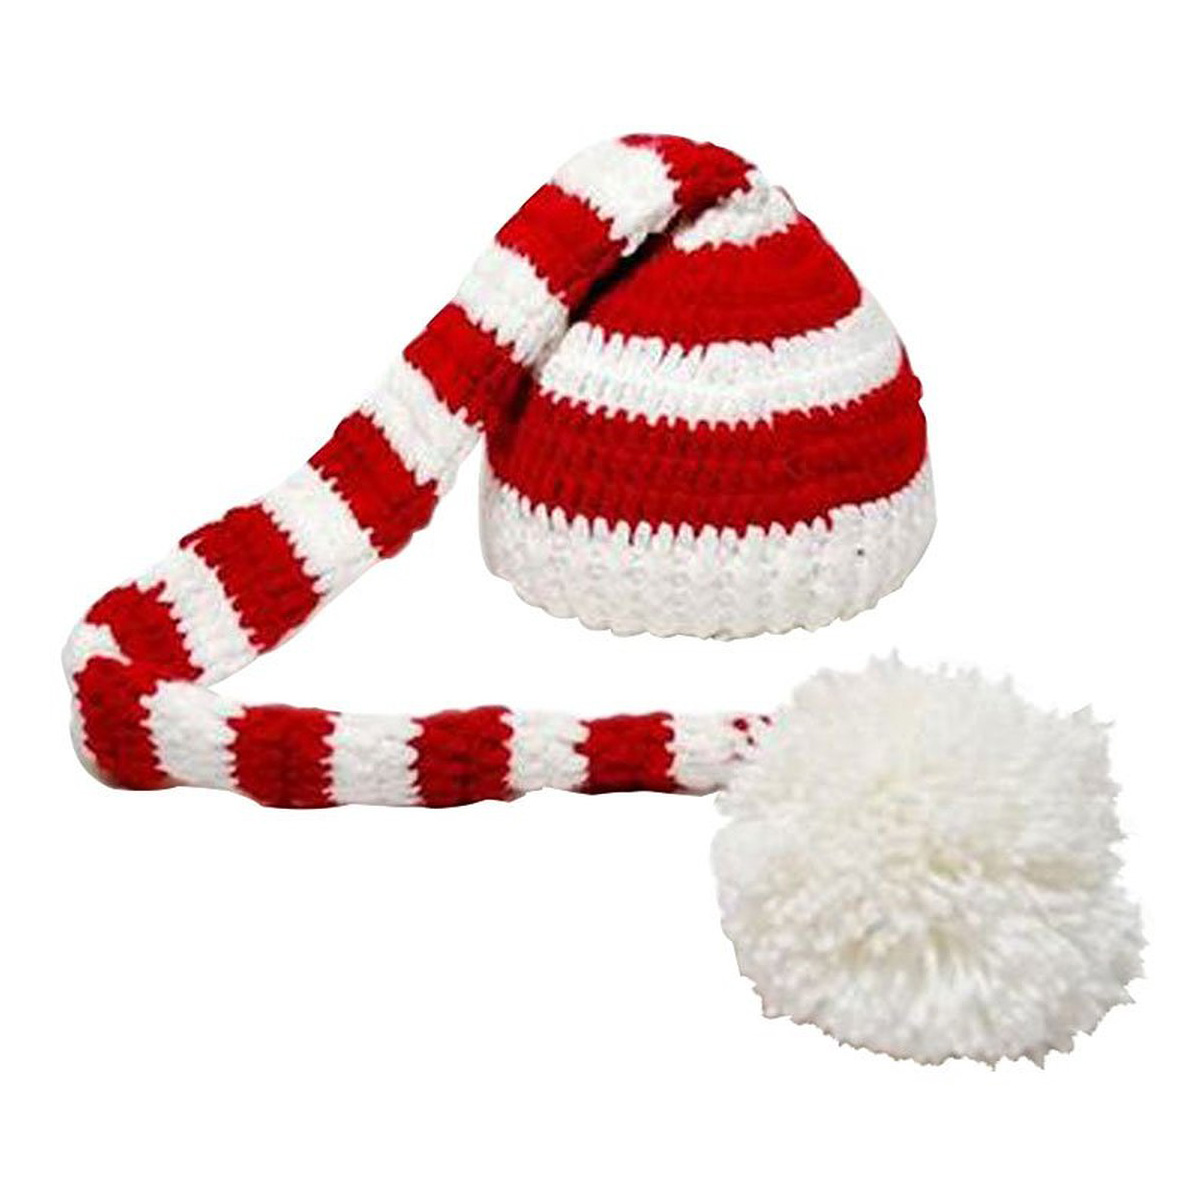 Baby Hat Handmade Christmas Beanies Costume Knitted Newborn Long Tail Crochet Newborn Photography Props Accessories